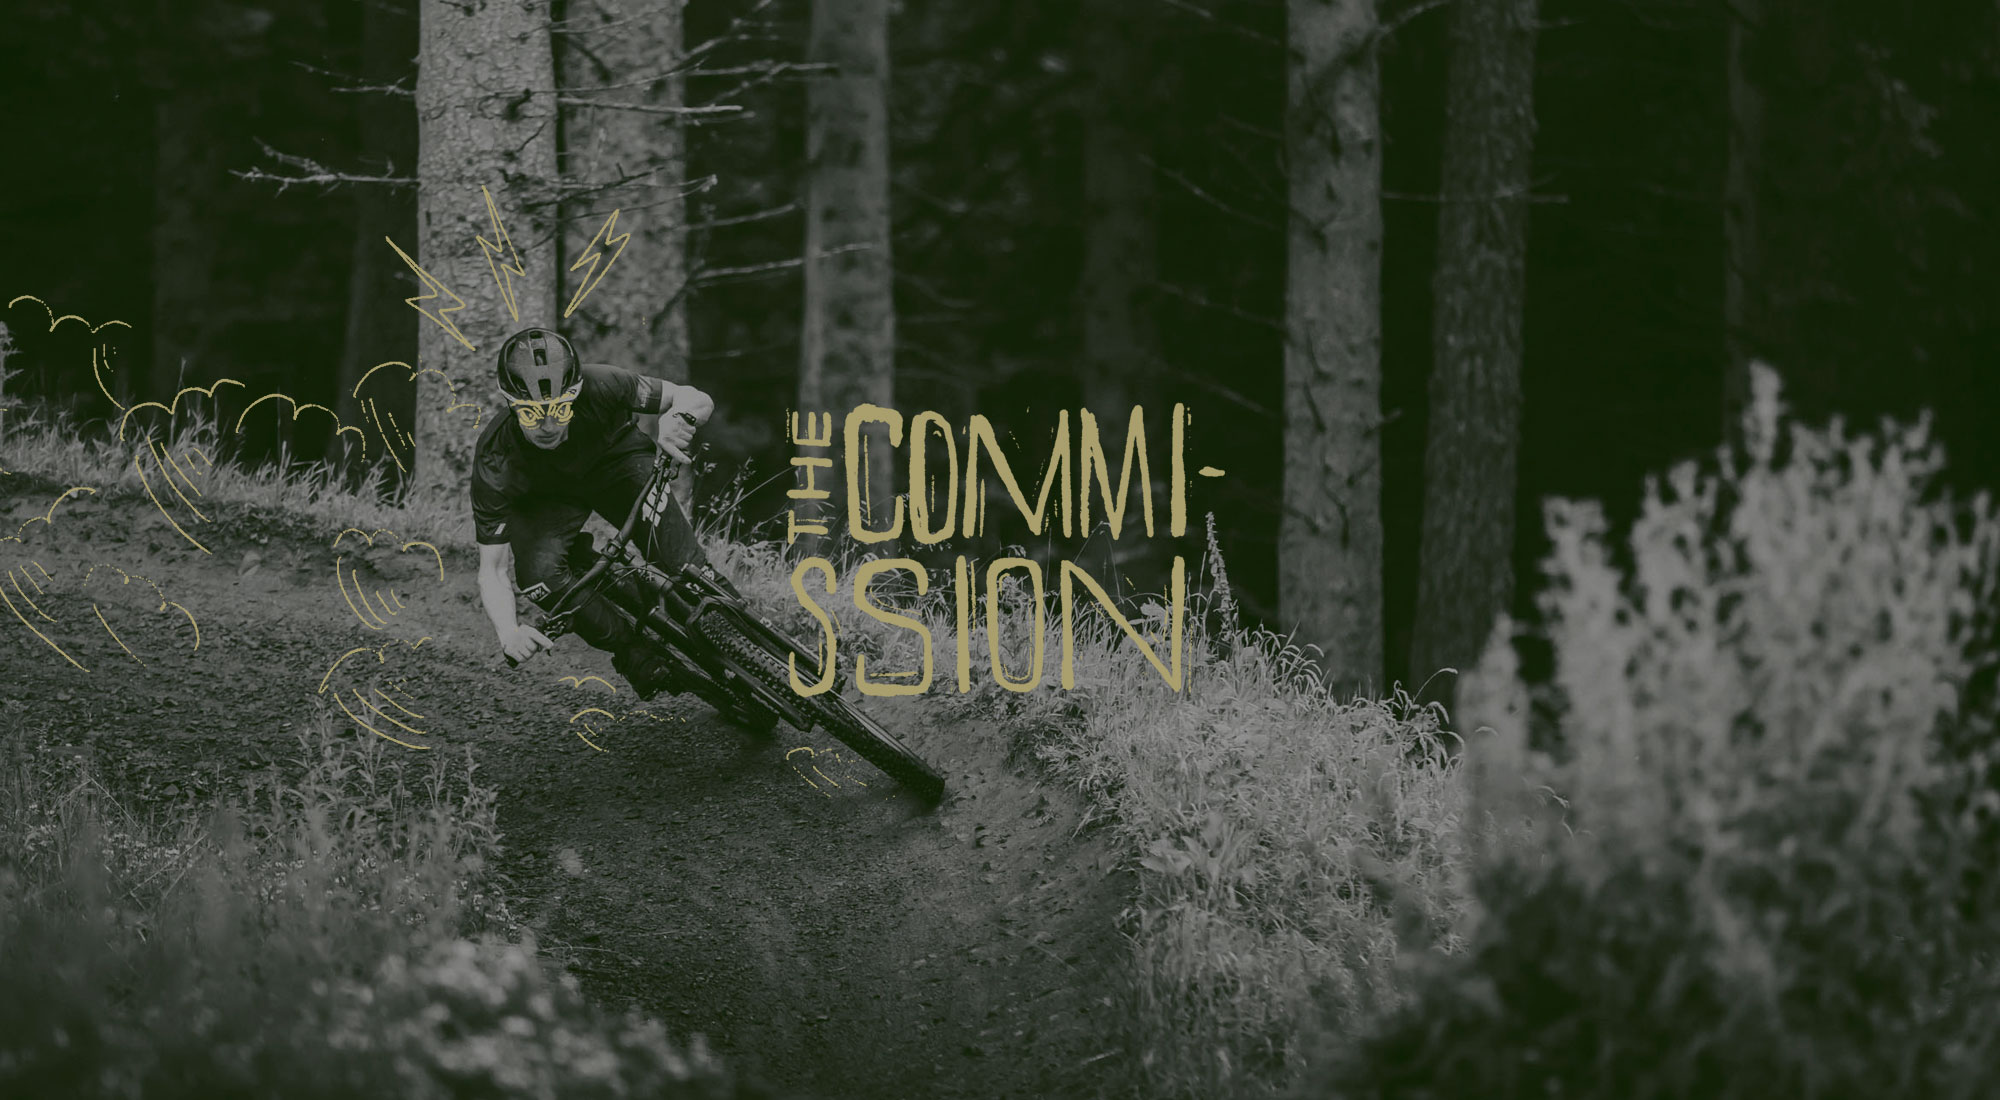 The Commission, the community that will have you eating dirt